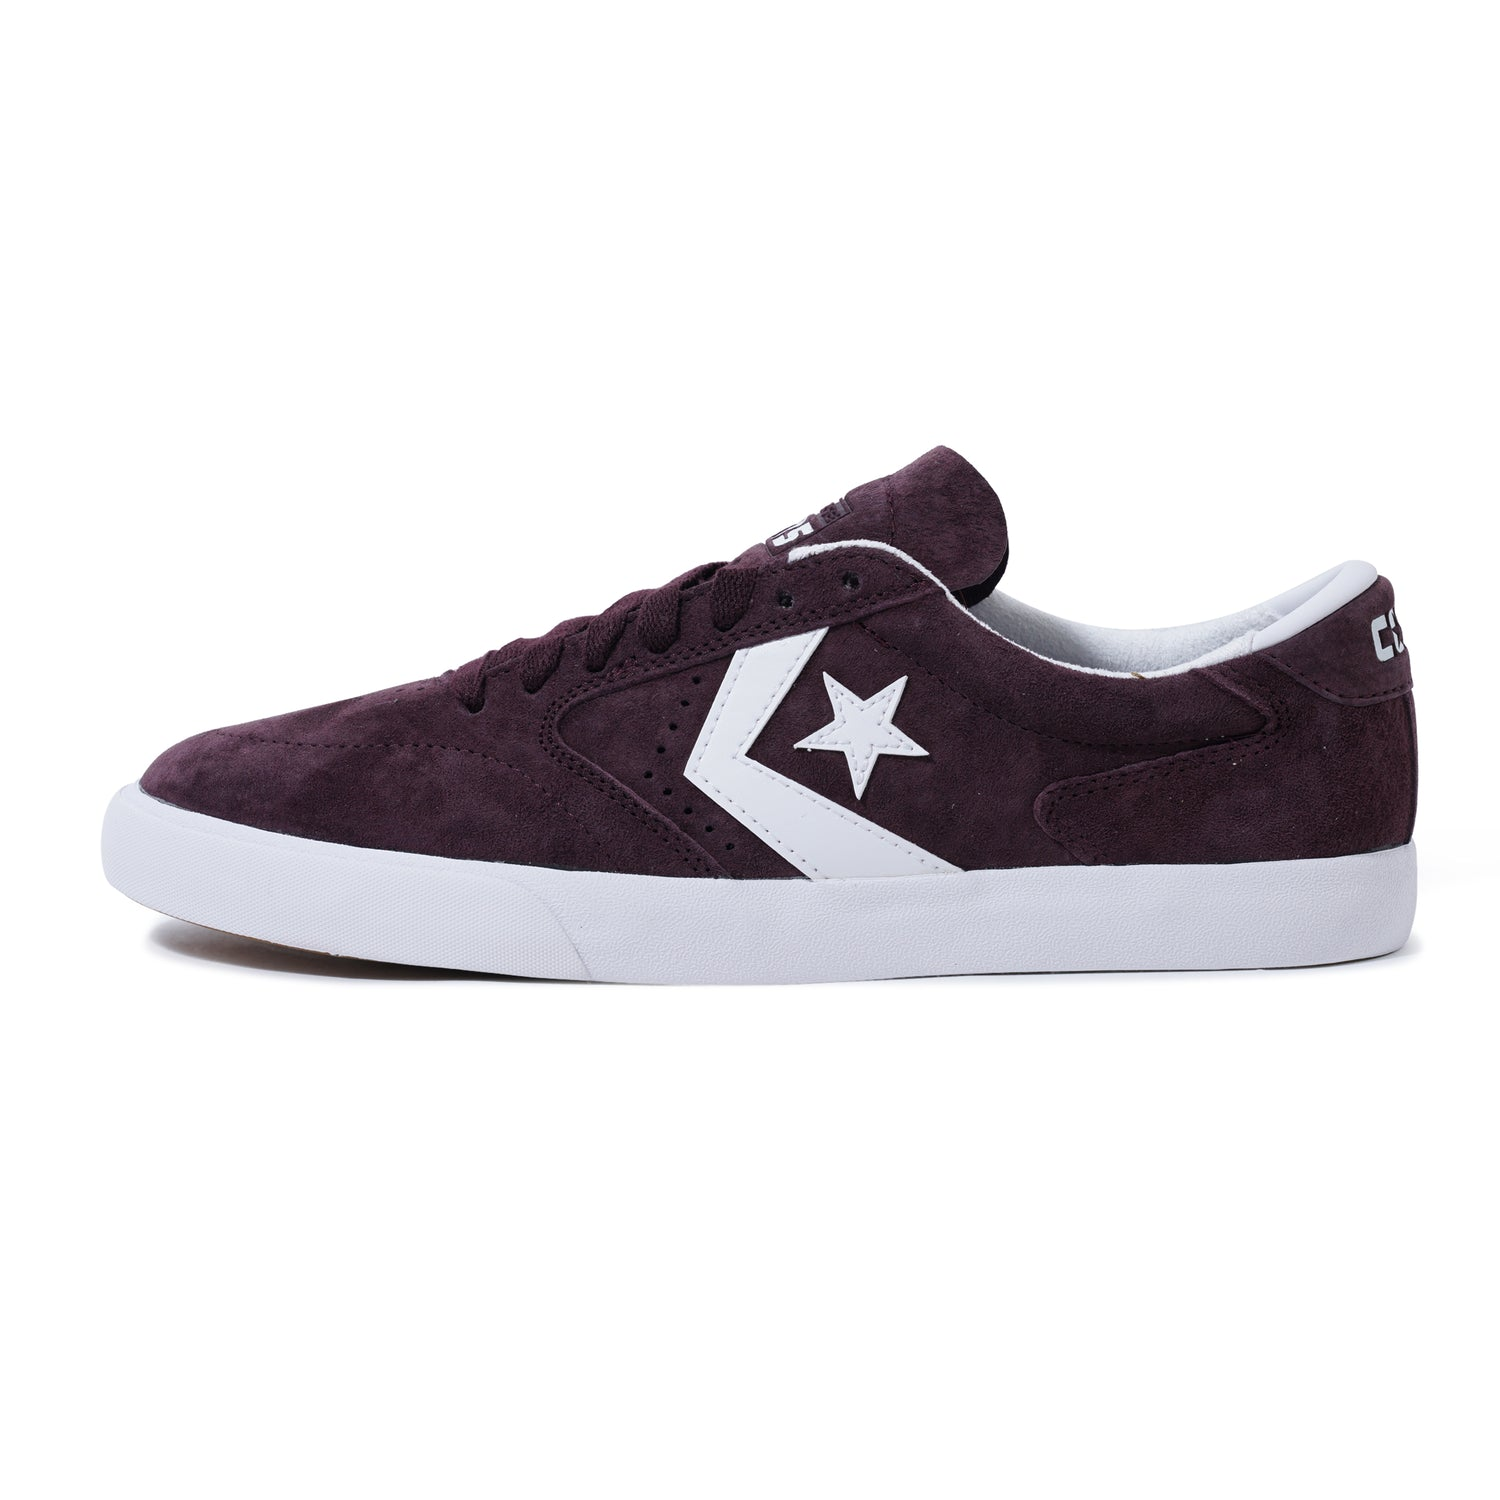 Checkpoint Pro Low, Black Currant / White / Gum